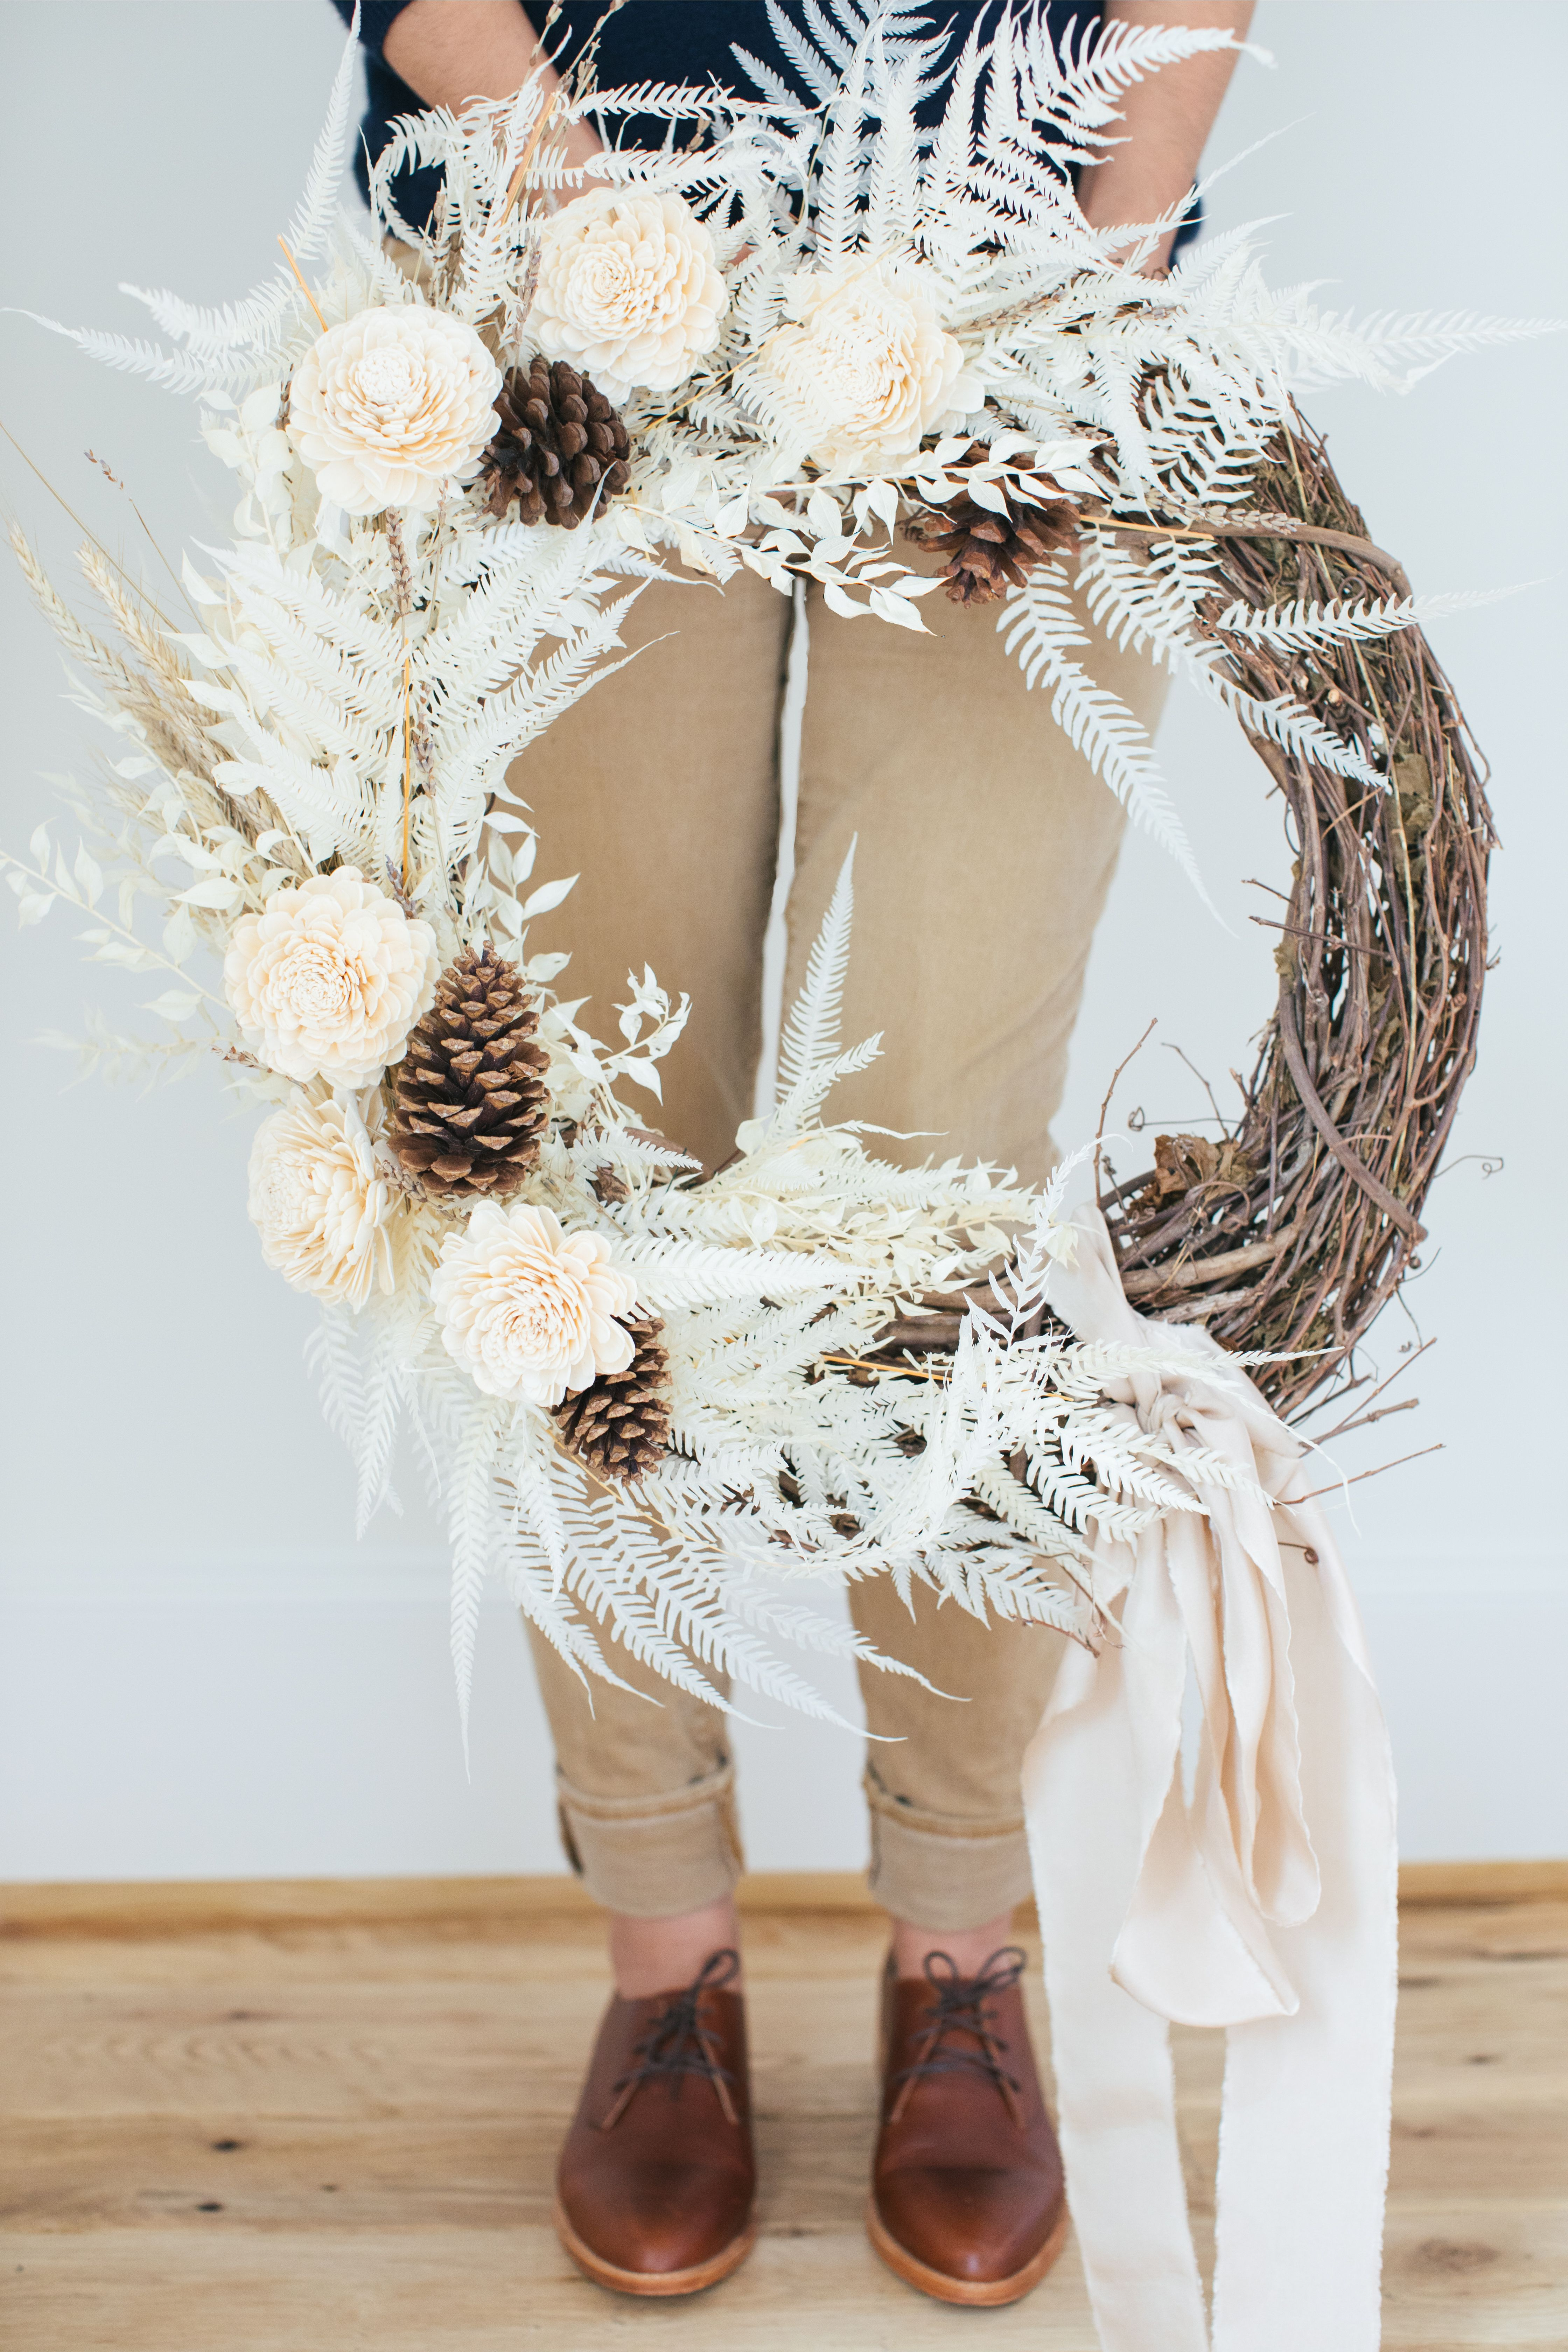 Photo of How to Make Your Own Wreath Using Dried Florals